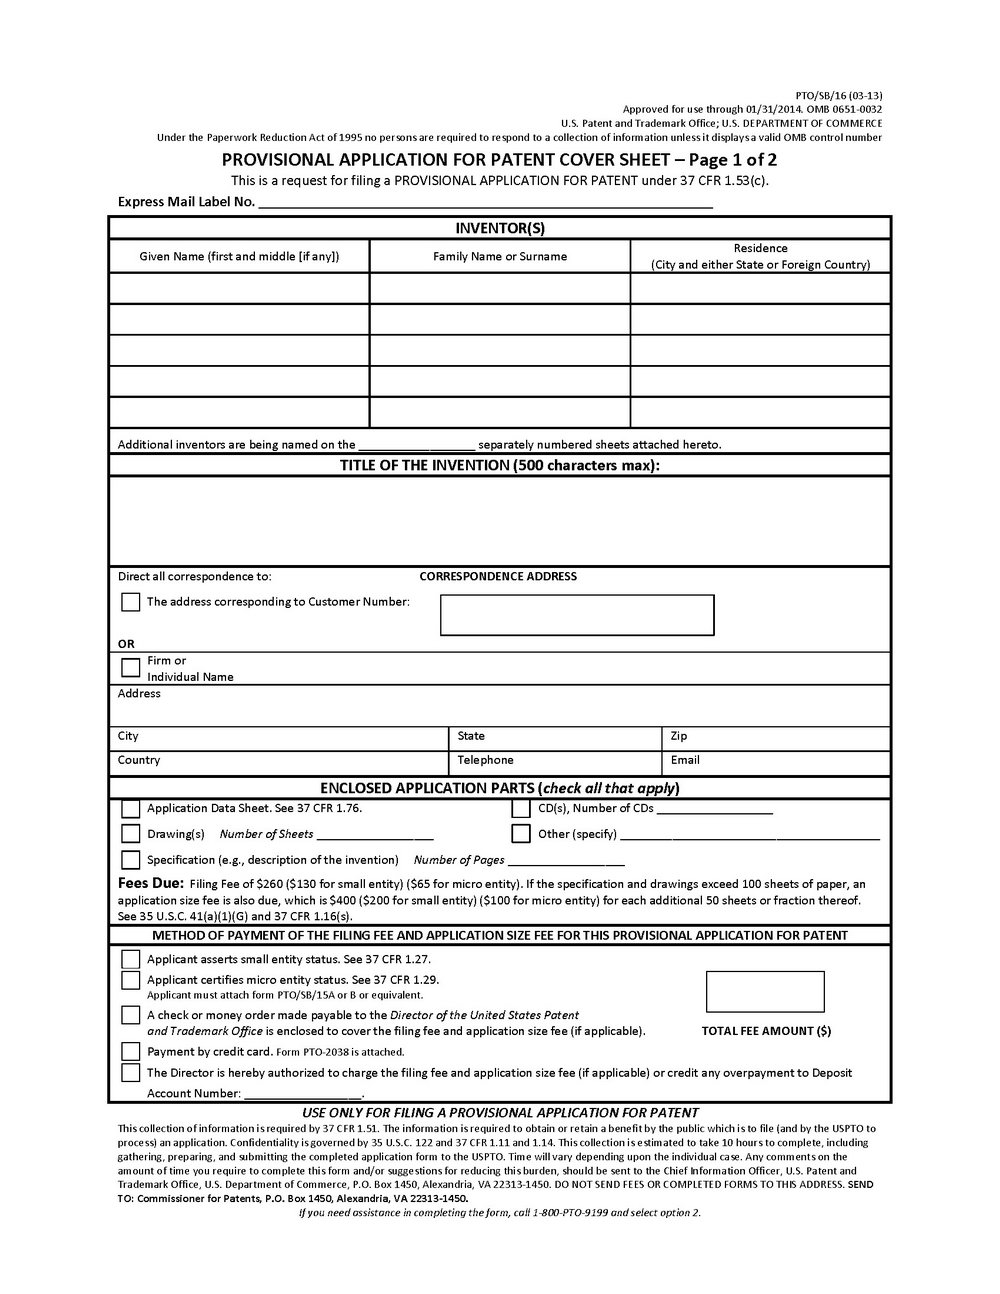 provisional-patent-forms-download Provisional Patent Application Form Uspto on example pdf, requirements page 2, cover sheet part two, example written, examples well written, sports equipment, summary invention,